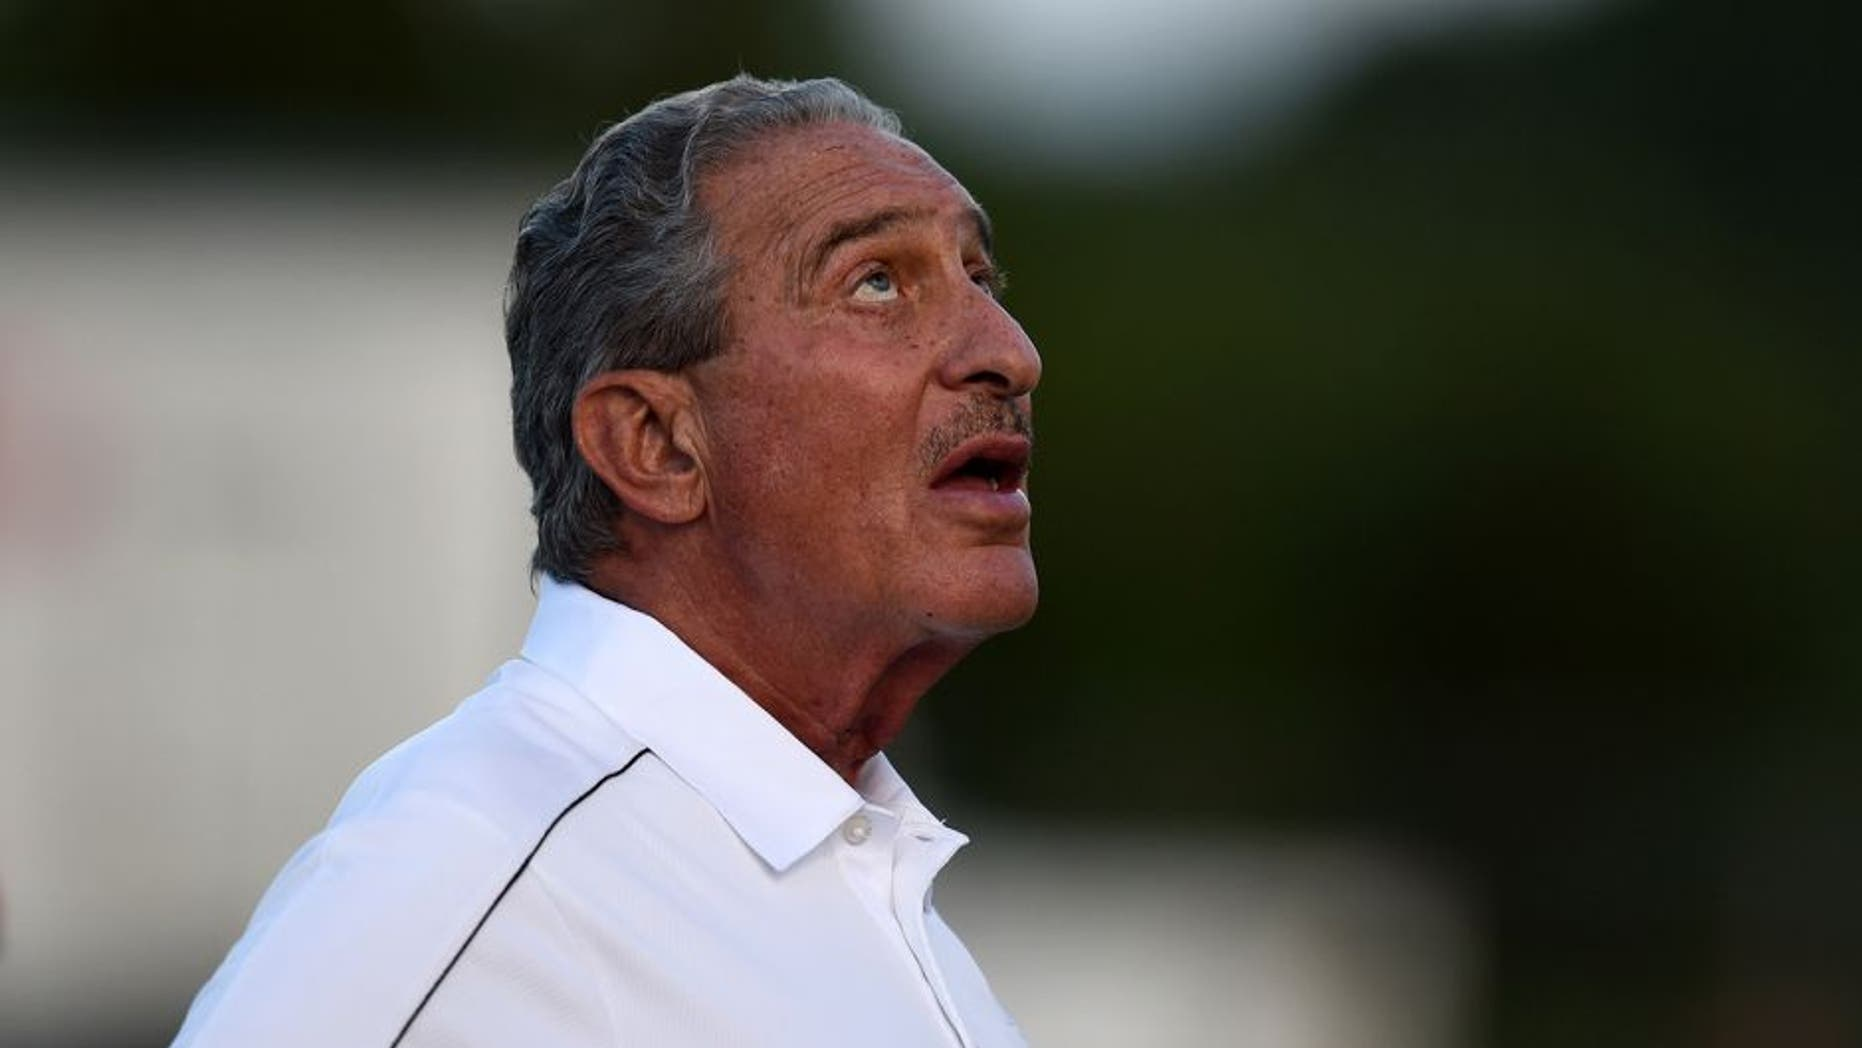 Aug 1, 2014; Lawrenceville, GA, USA; Atlanta Falcons team owner Arthur Blank watches skydivers land on the field during Atlanta Falcons practice during Falcons Friday Night Lights at Archer High School. Mandatory Credit: Dale Zanine-USA TODAY Sports